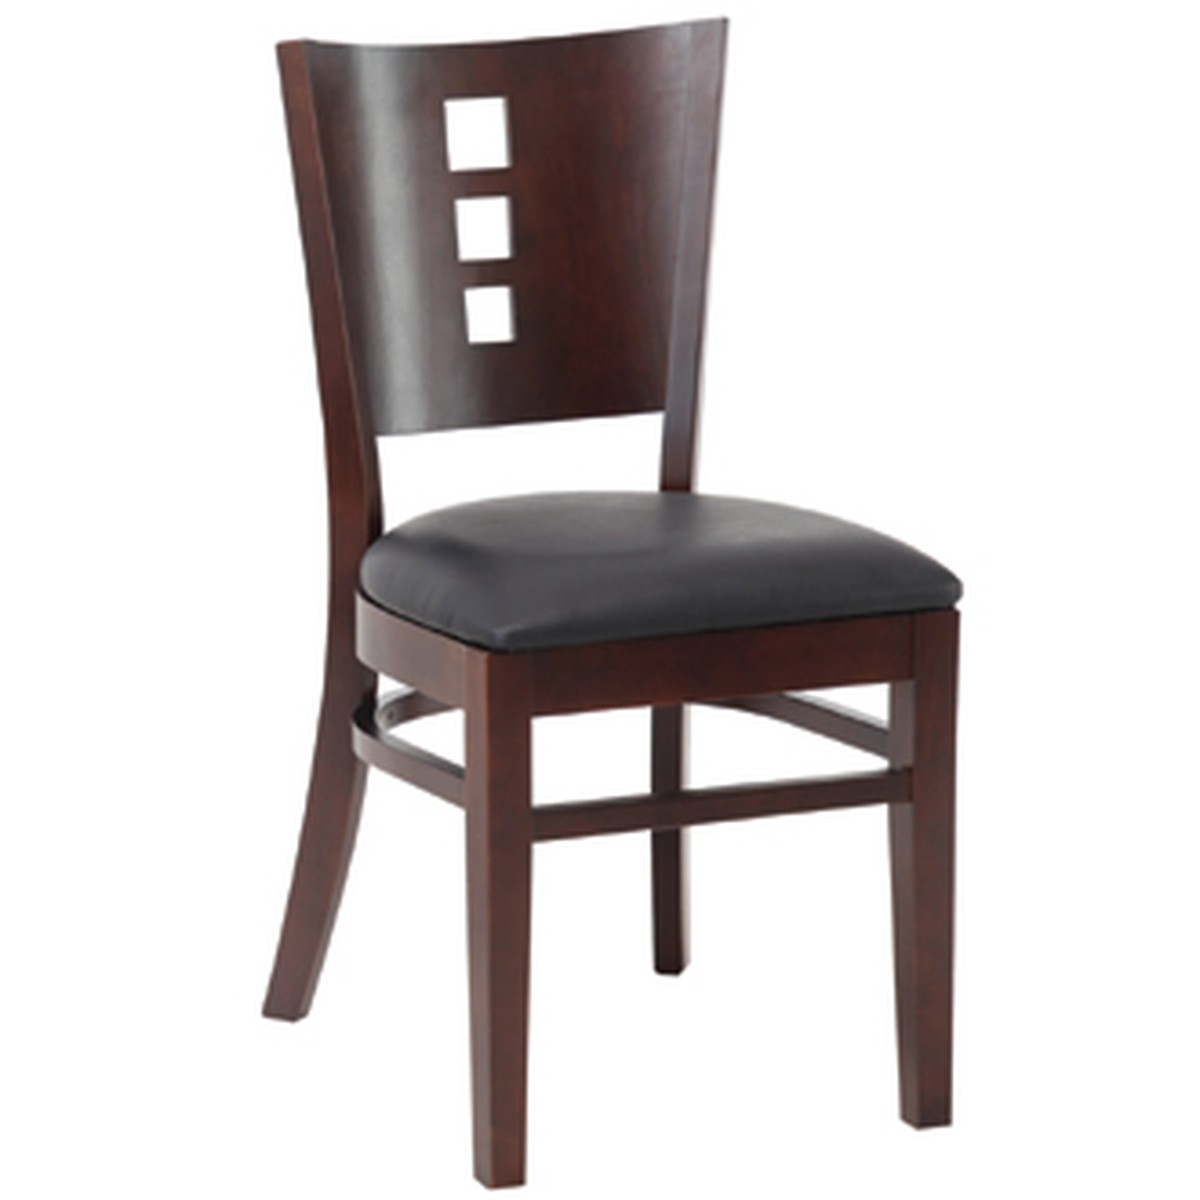 cafe chairs for sale toddler living room chair secondhand and tables restaurant 50x